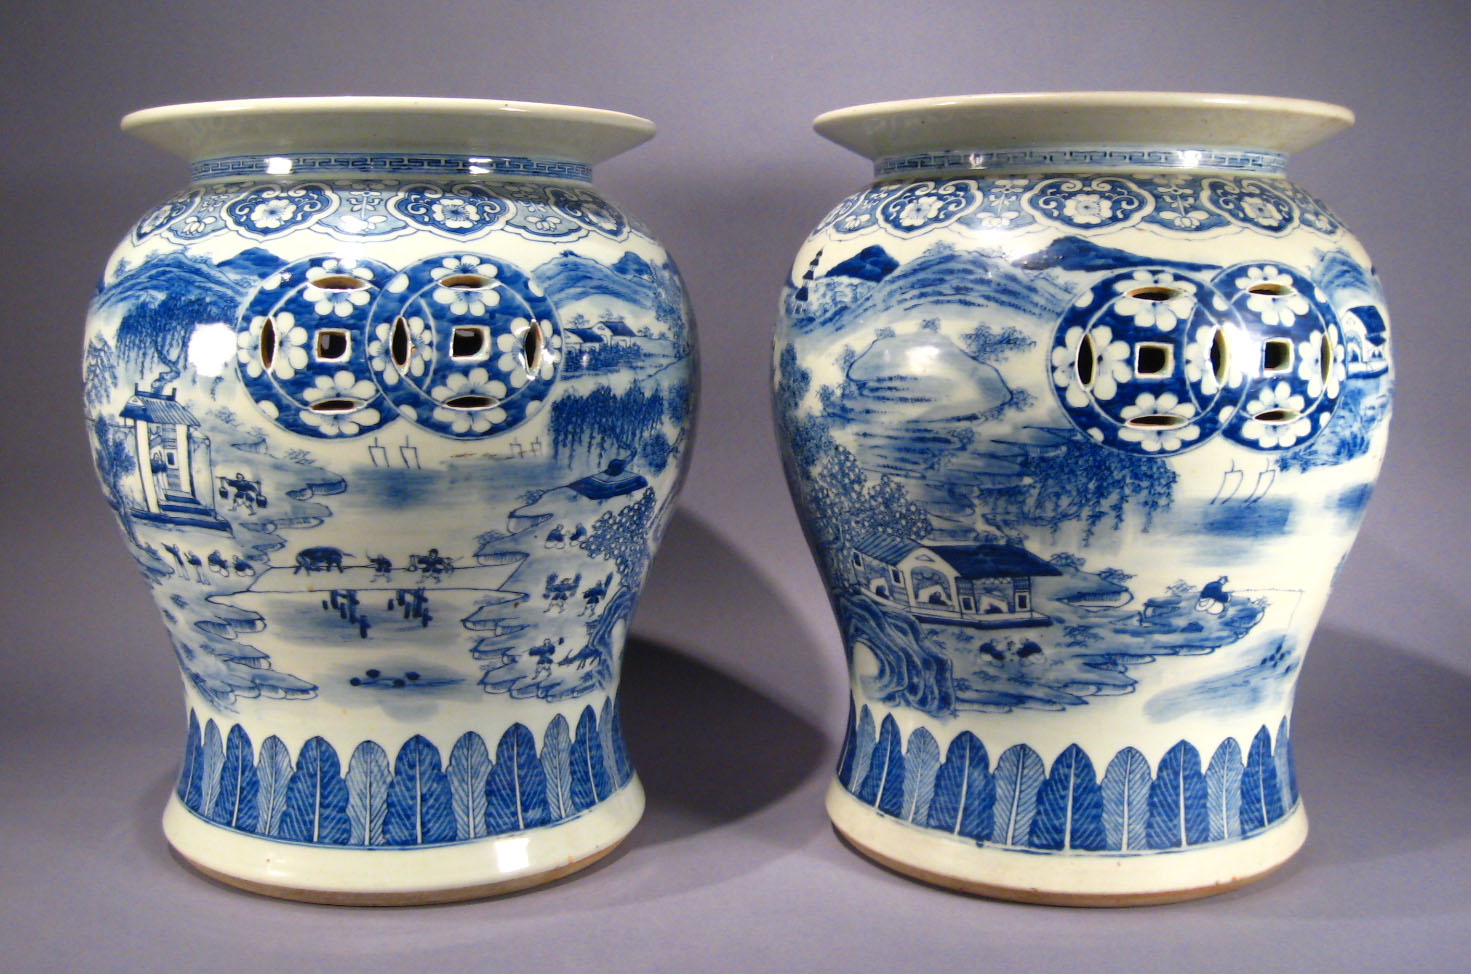 Pair Of Chinese Export Porcelain Blue And White Garden Seats. Pair Of  Chinese Export Porcelain Blue And White Garden Seats ...